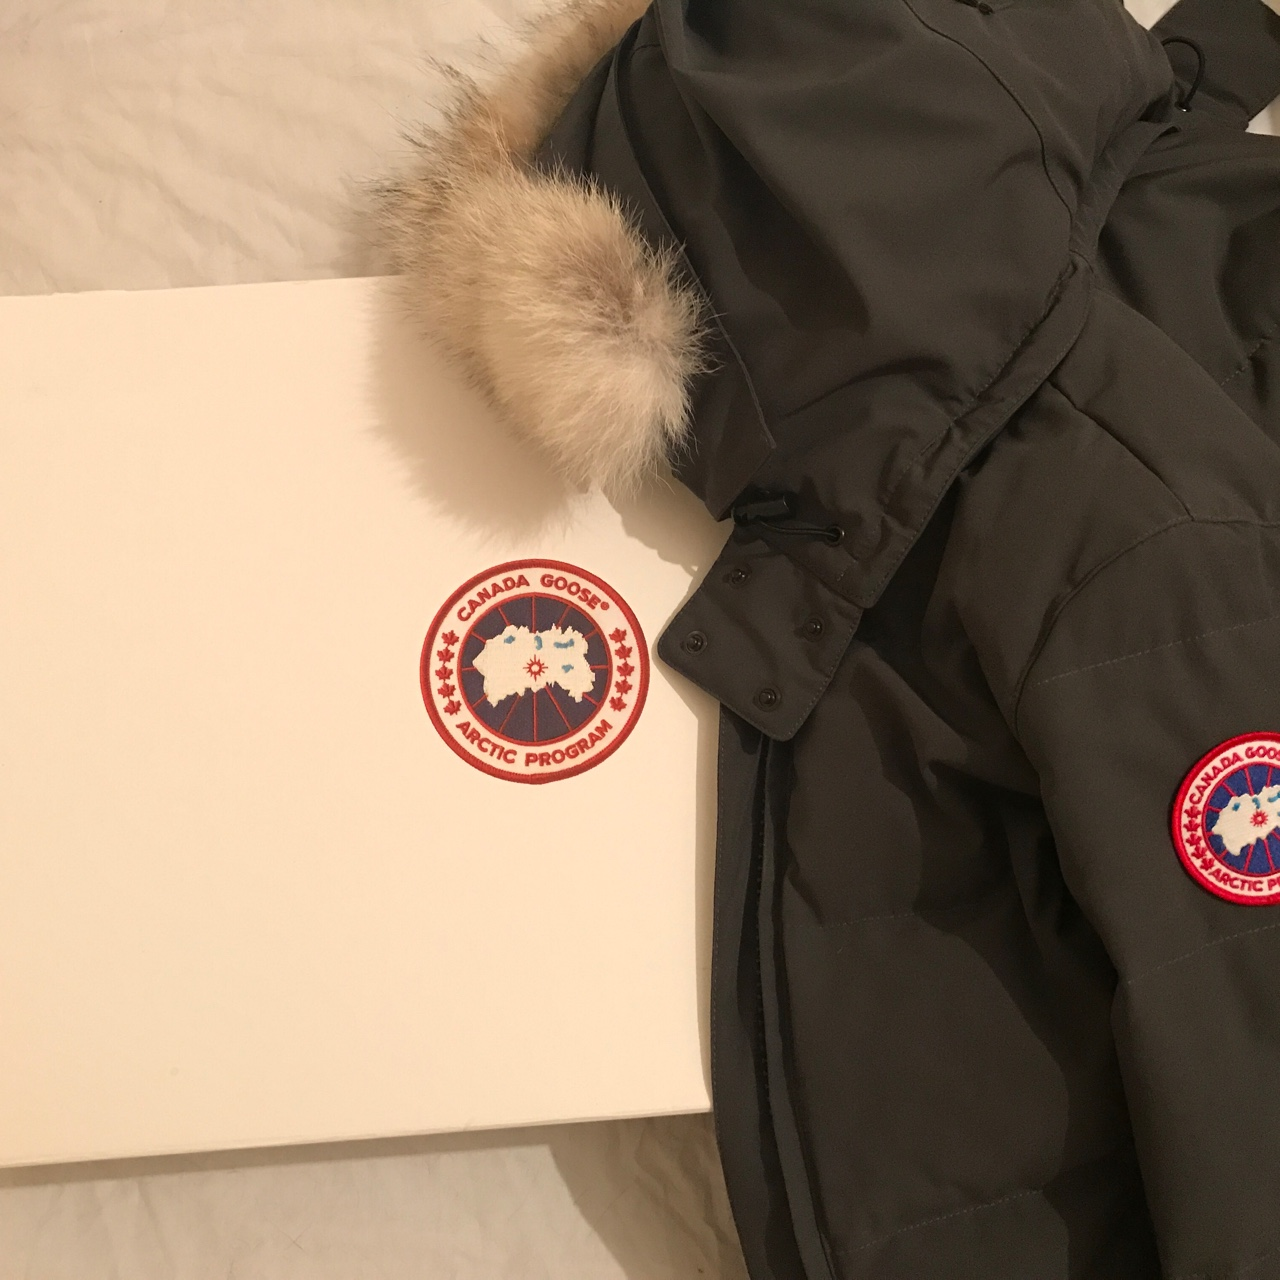 Canada goose coat NEVER USED, PERFECT CONDITION Depop